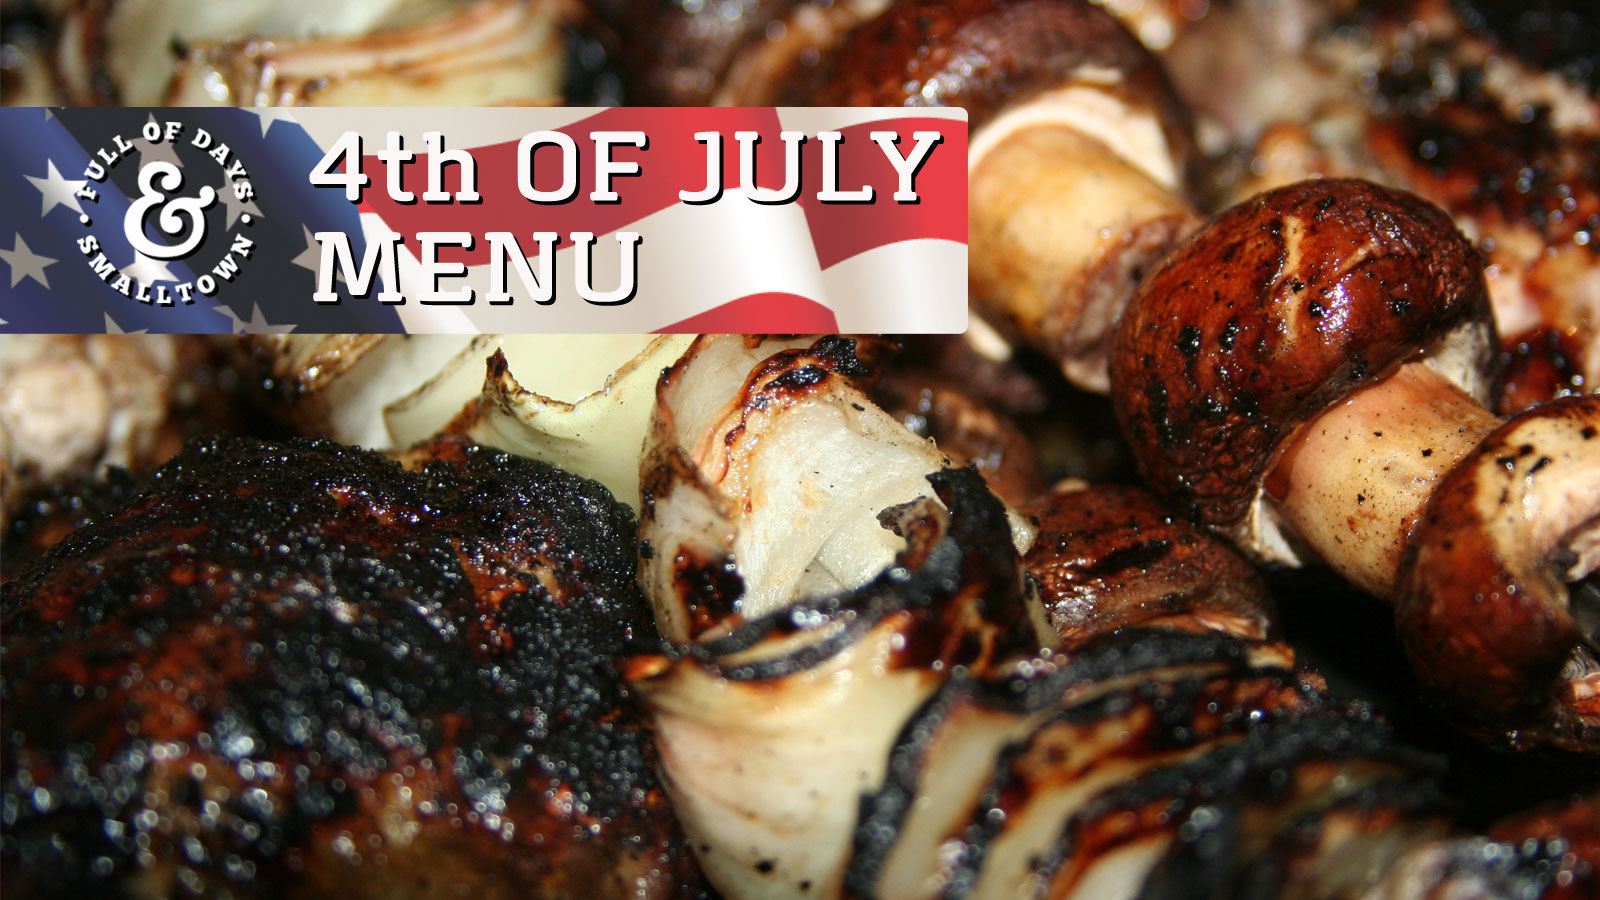 4th-of-July-Menu_Full-of-Days_1600-x-900